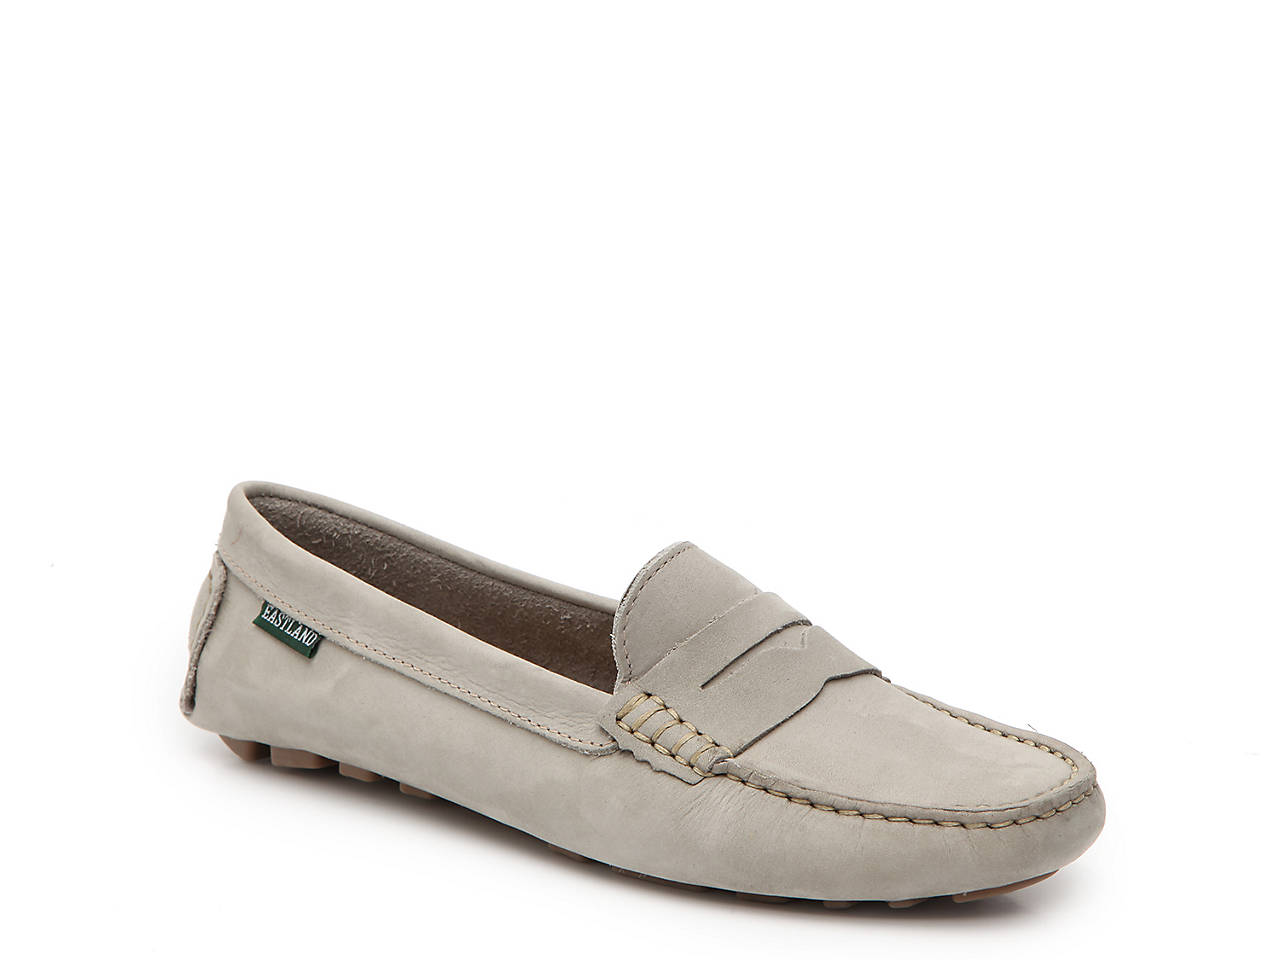 Eastland Patricia Loafer